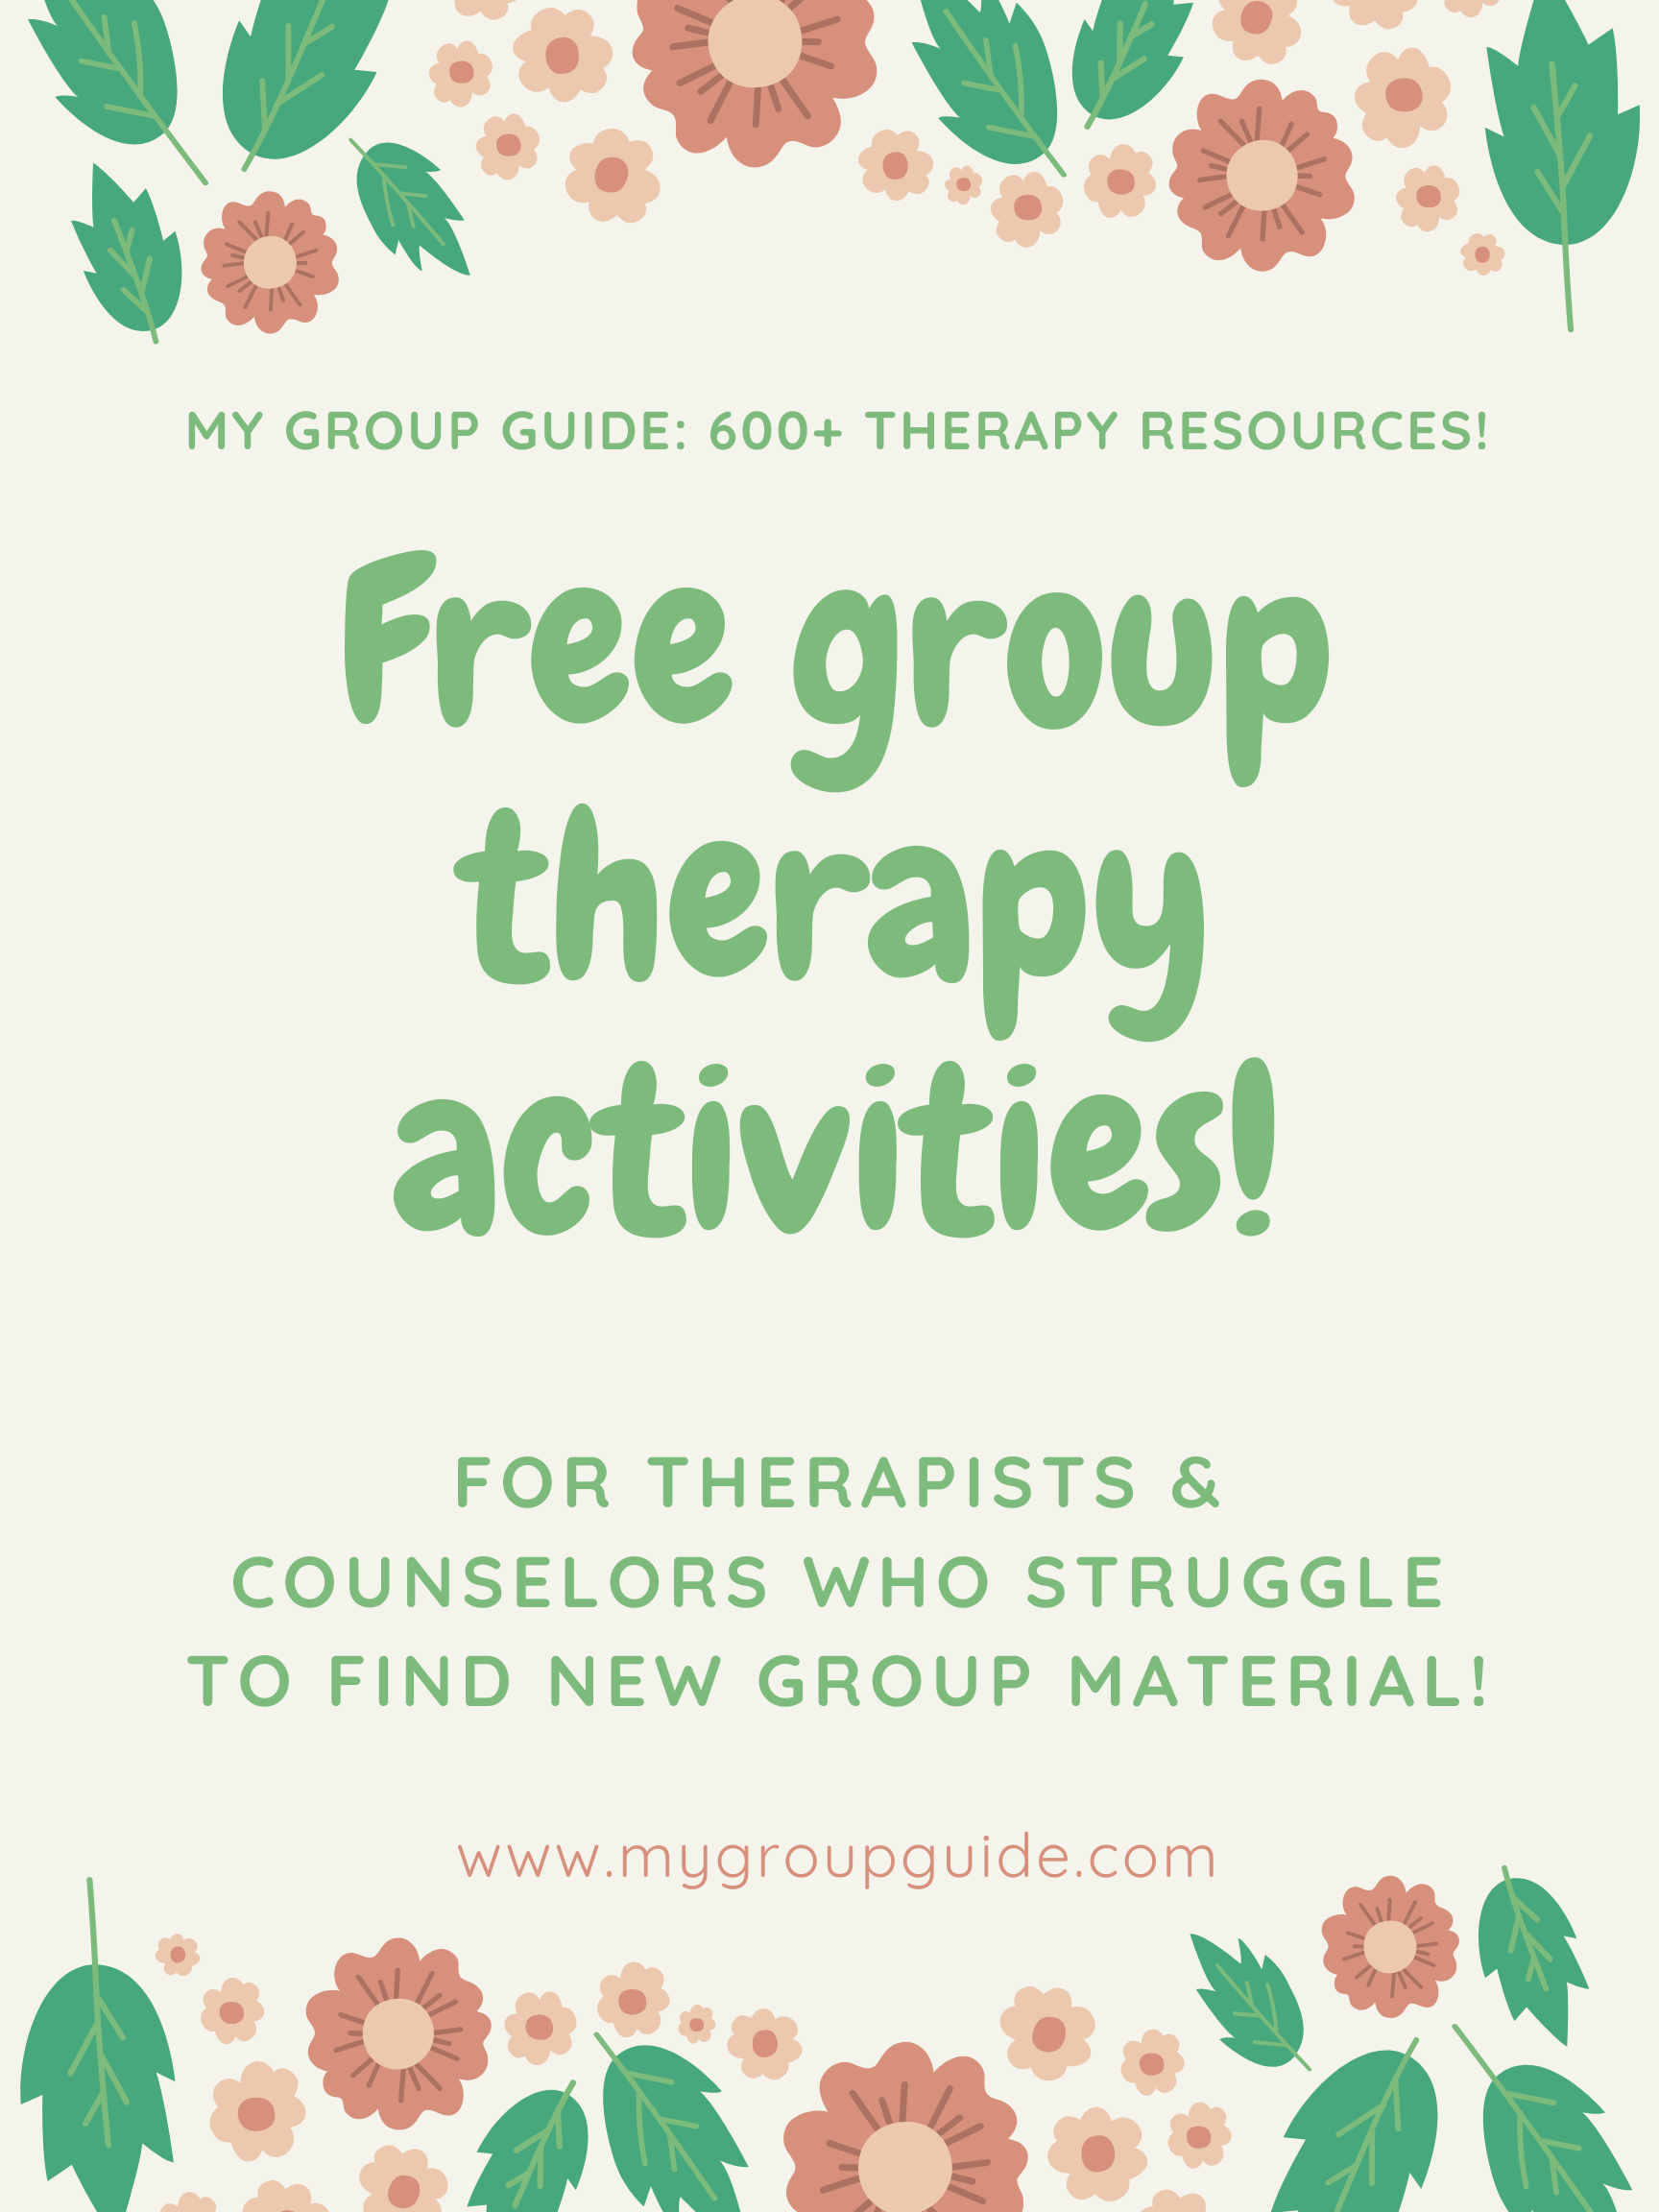 Learn More About Our Therapy Resources